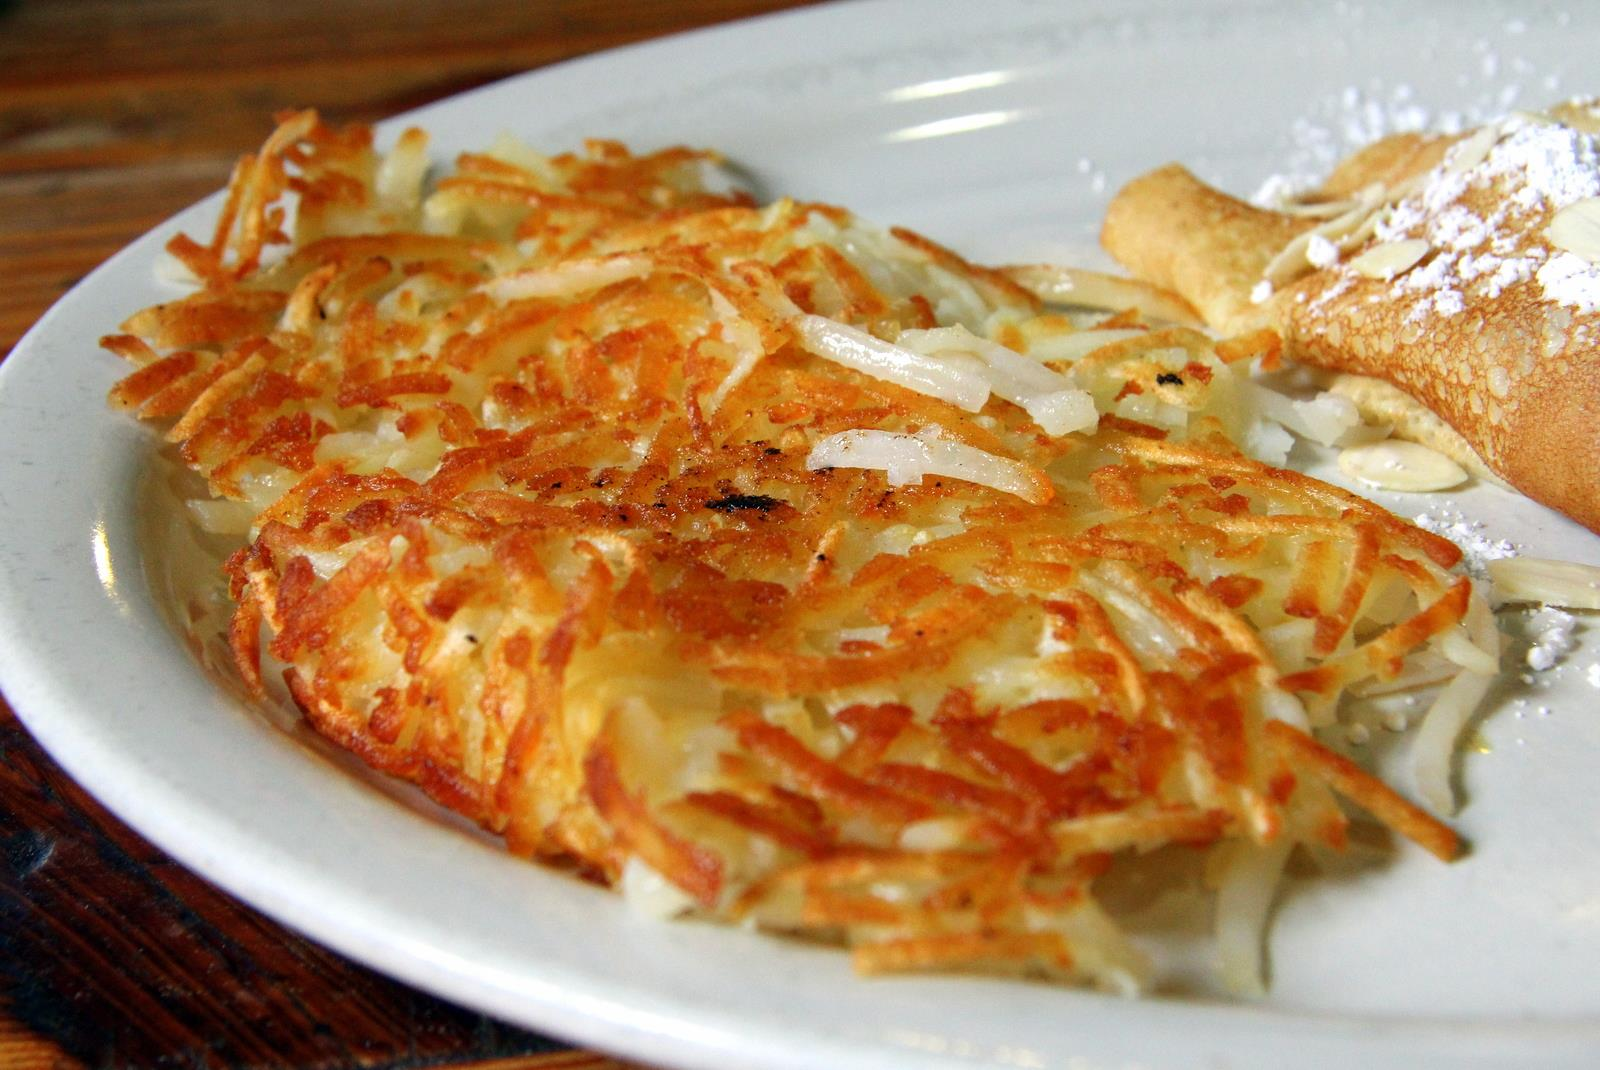 Make a few hash browns